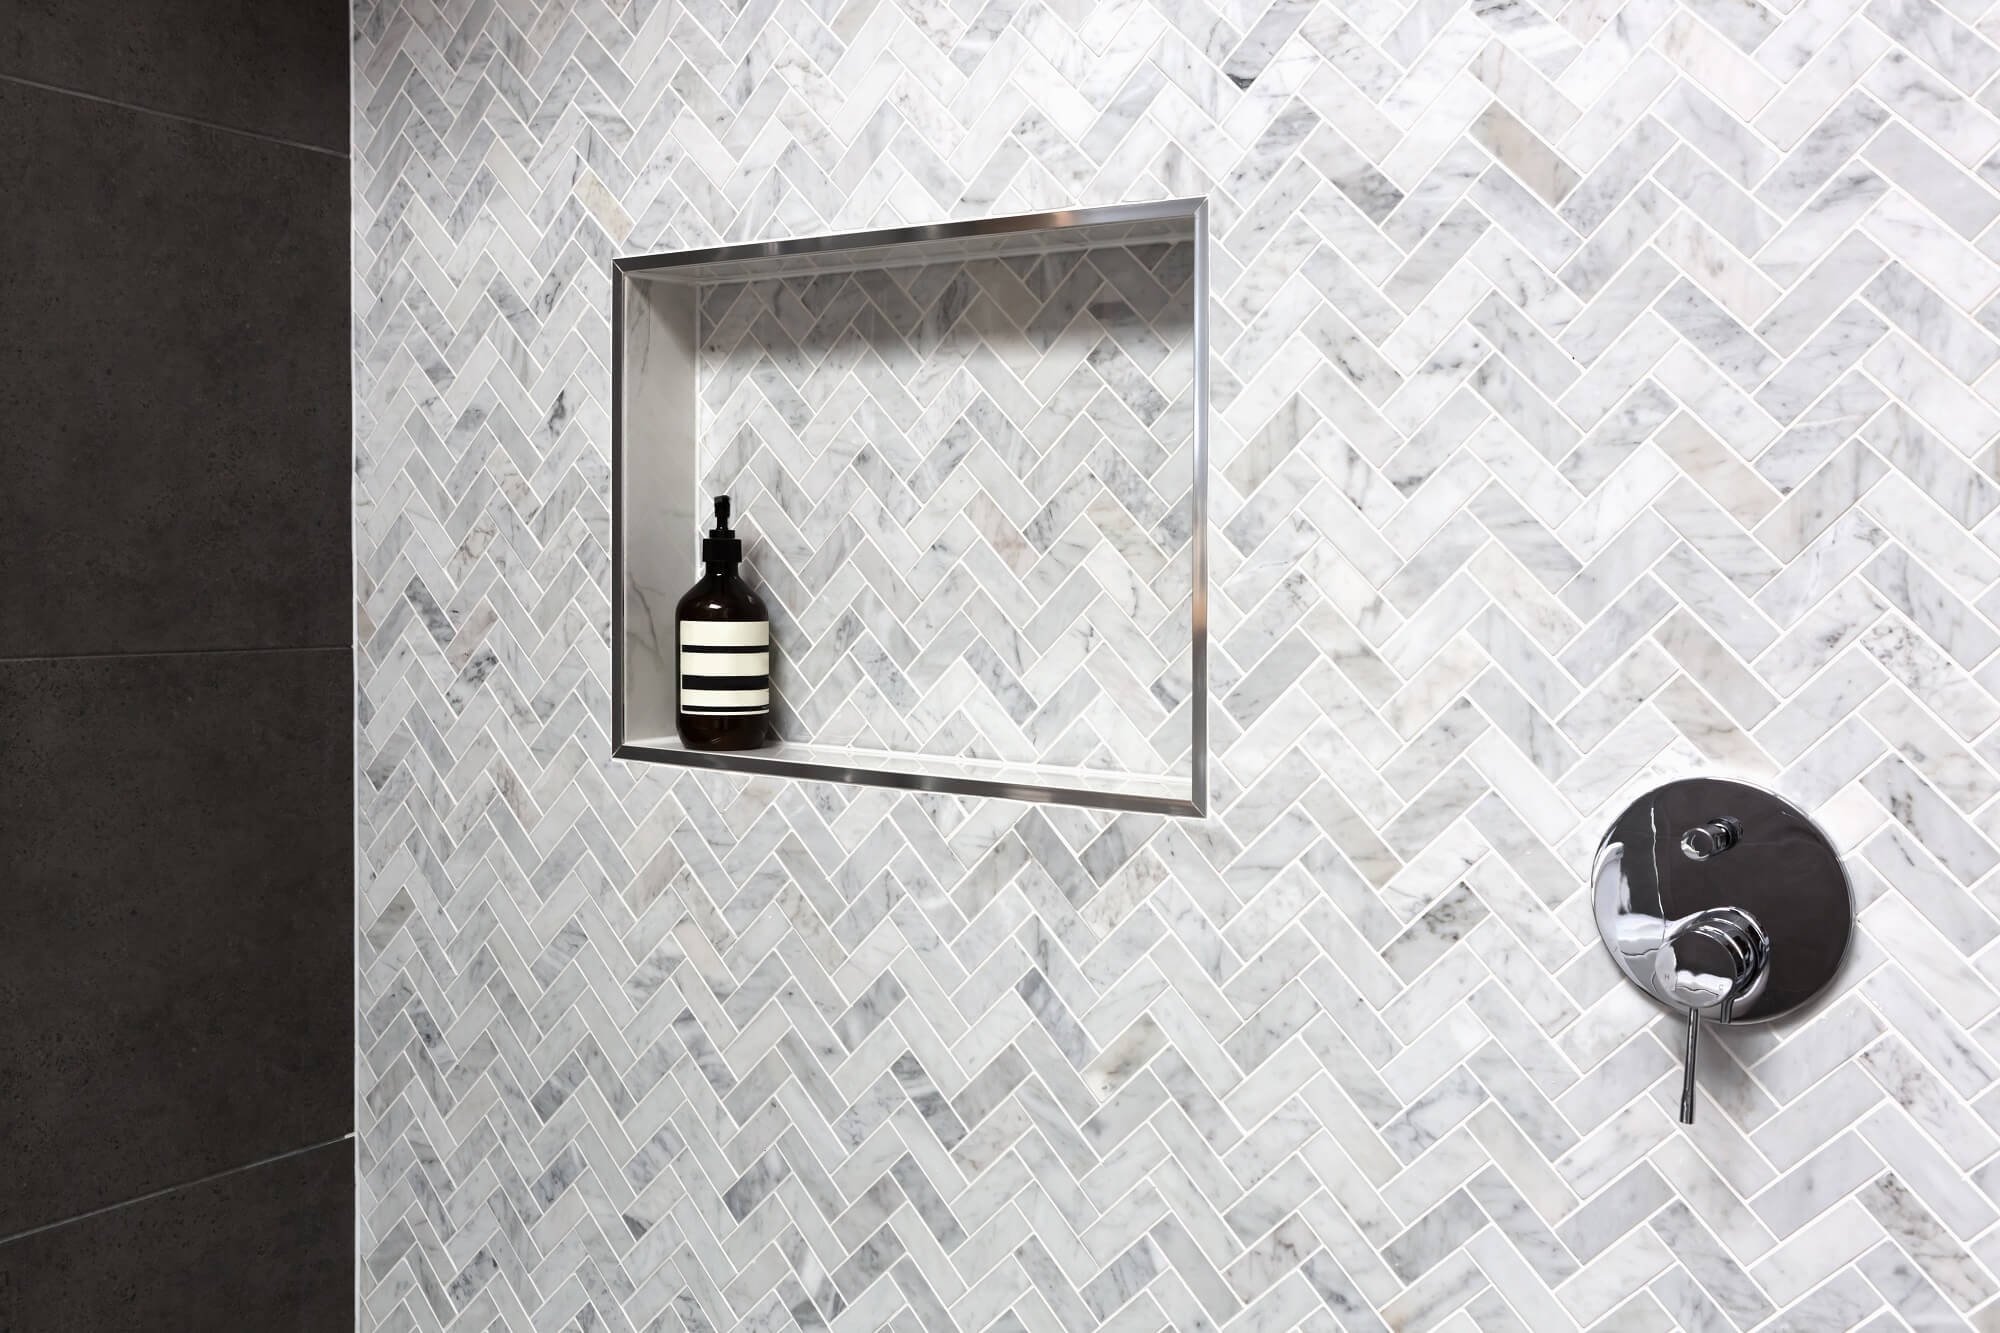 Herringbone Tile A Hot Trend For Homes Builddirectbuilddirect Blog Life At Home